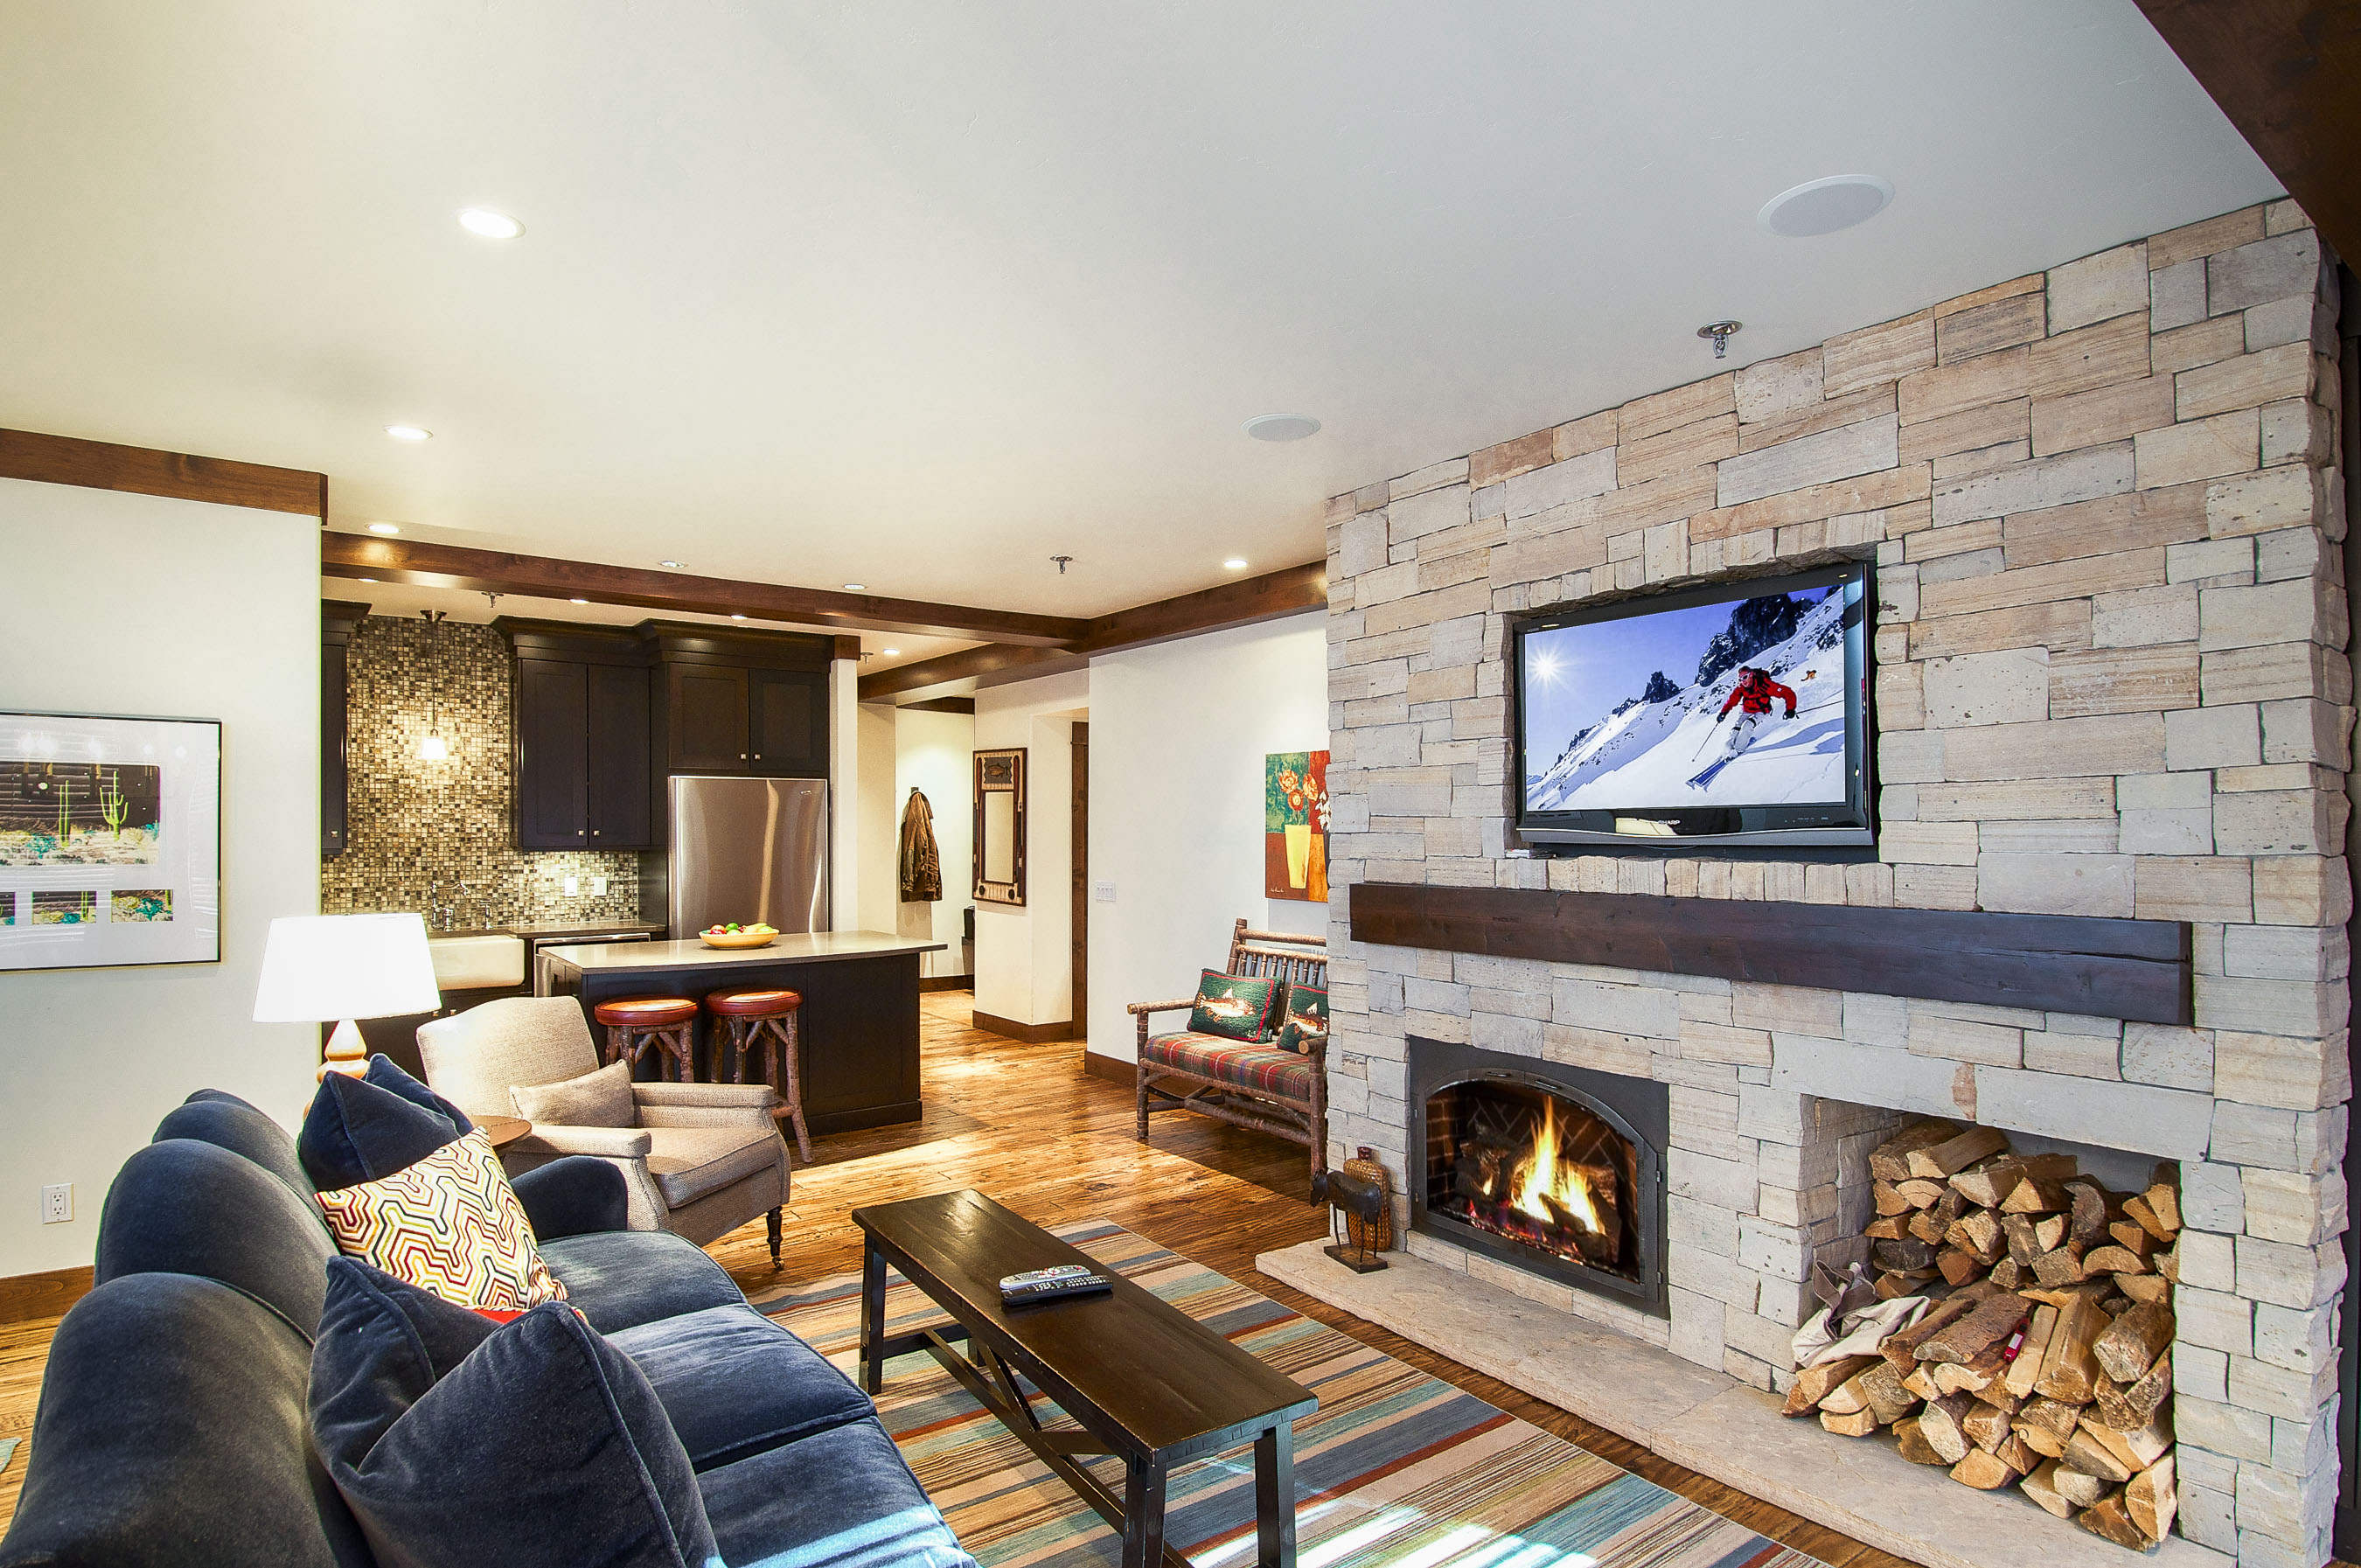 Condominium for Sale at Larger than Most 425 Wood Road, Unit 20 Snowmass Village, Colorado, 81615 United States